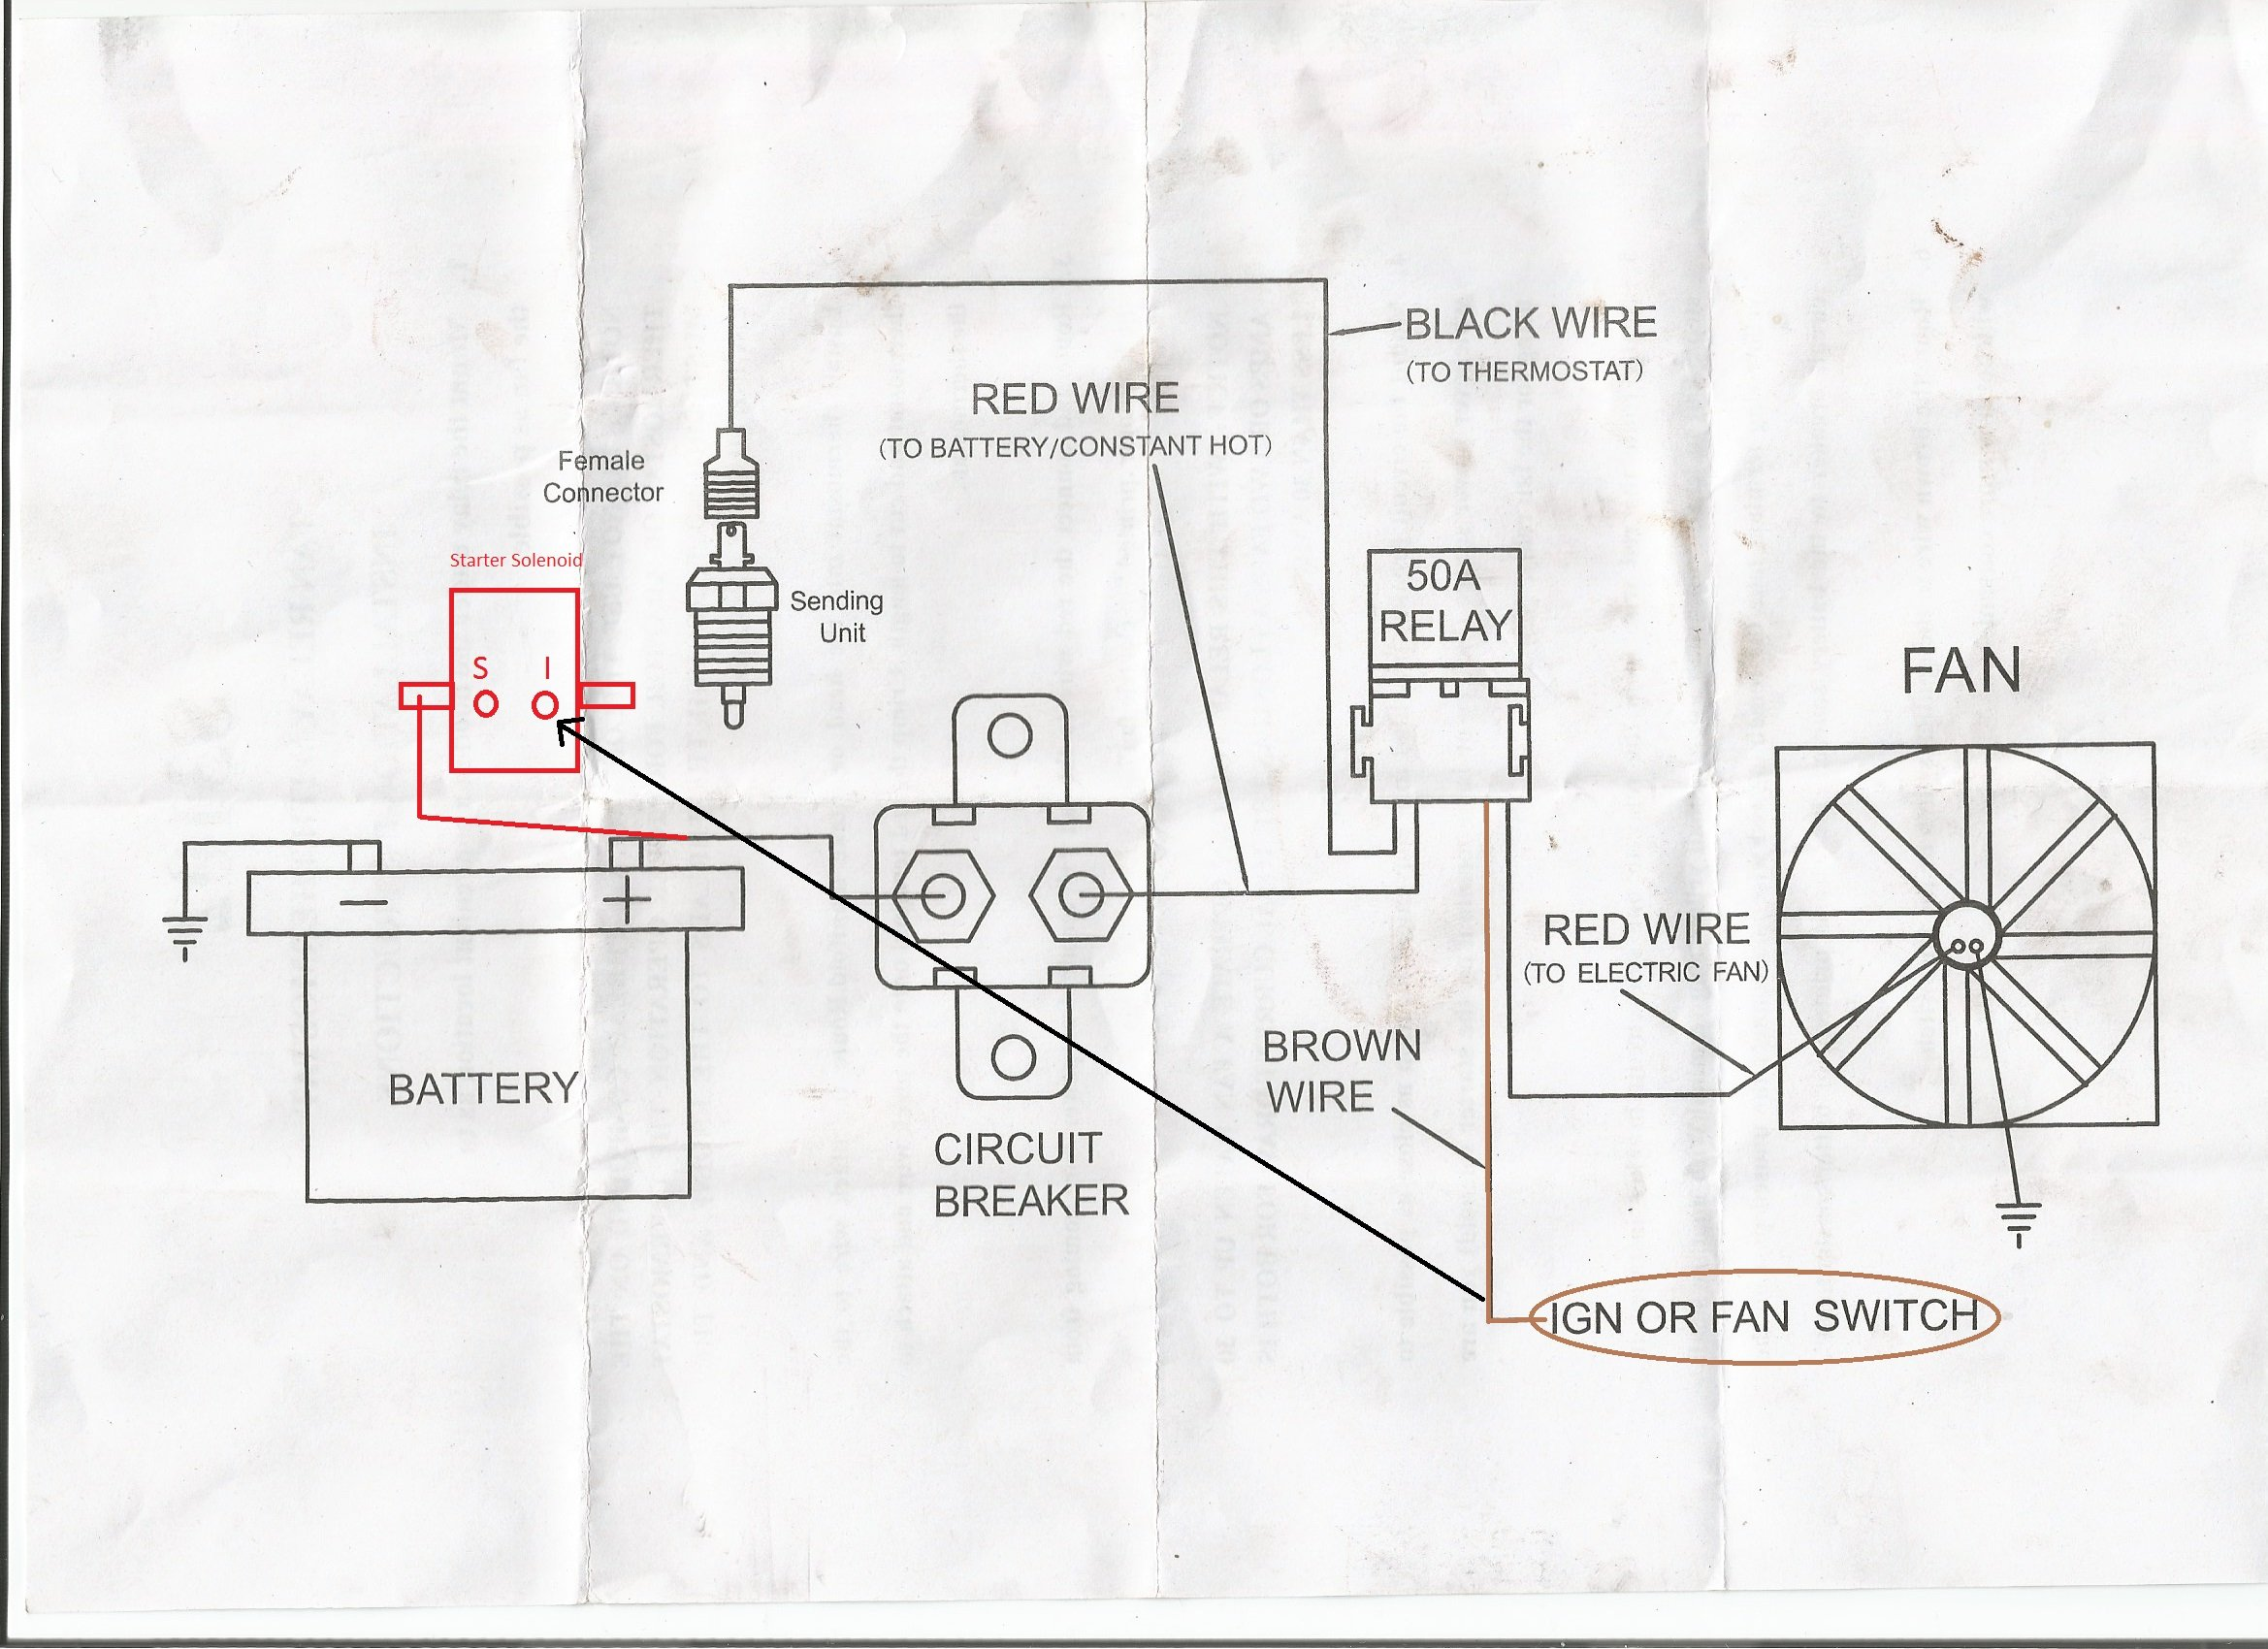 Basic Starter Wiring Diagram I Installed My Electric Fan Relay Kit But Ford Mustang Forum